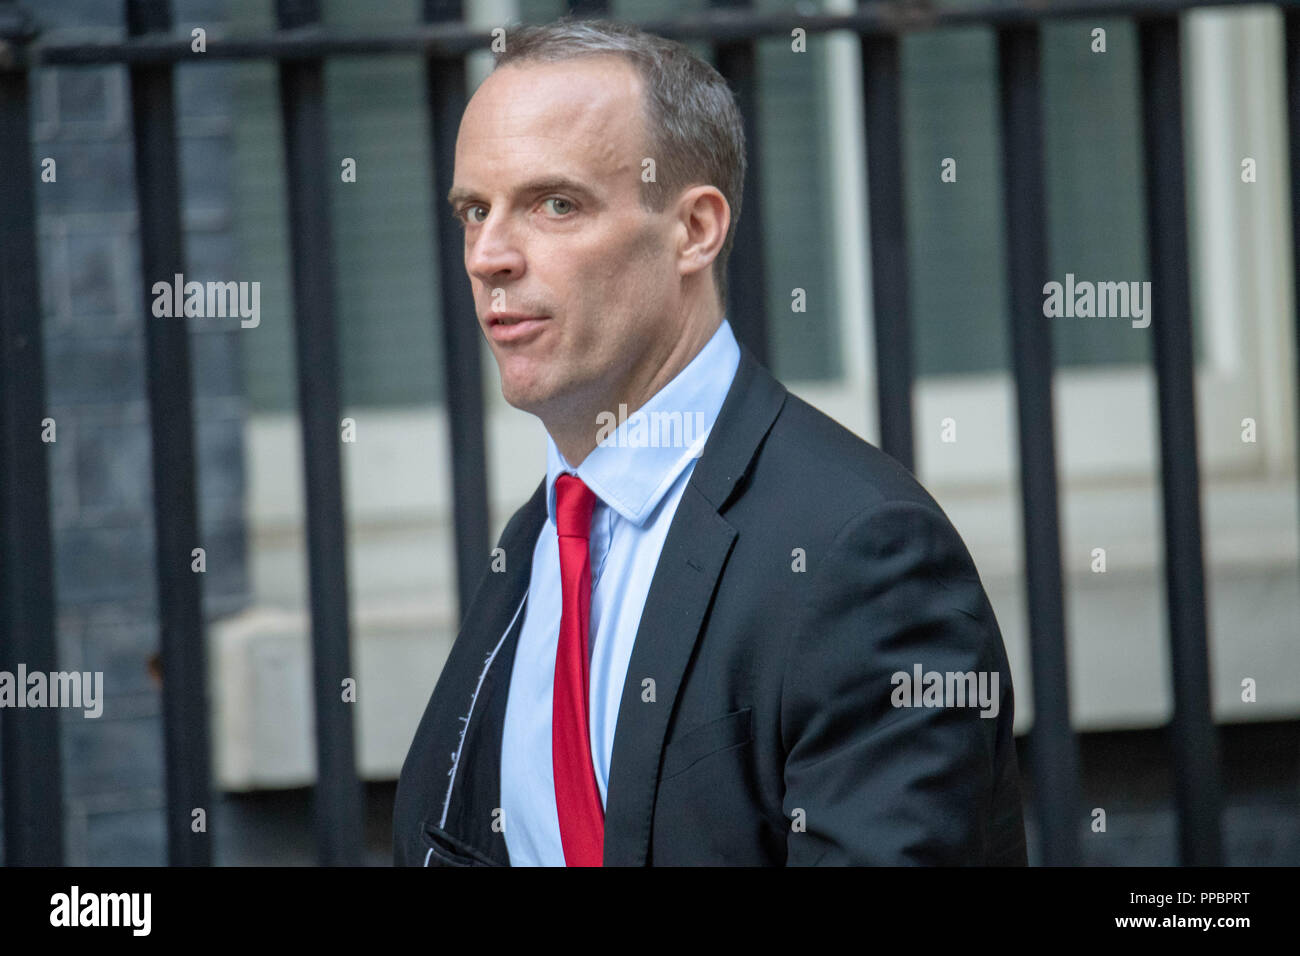 Sekretär Für Pc Dominic Raab Mp Pc Stockfotos Dominic Raab Mp Pc Bilder Alamy